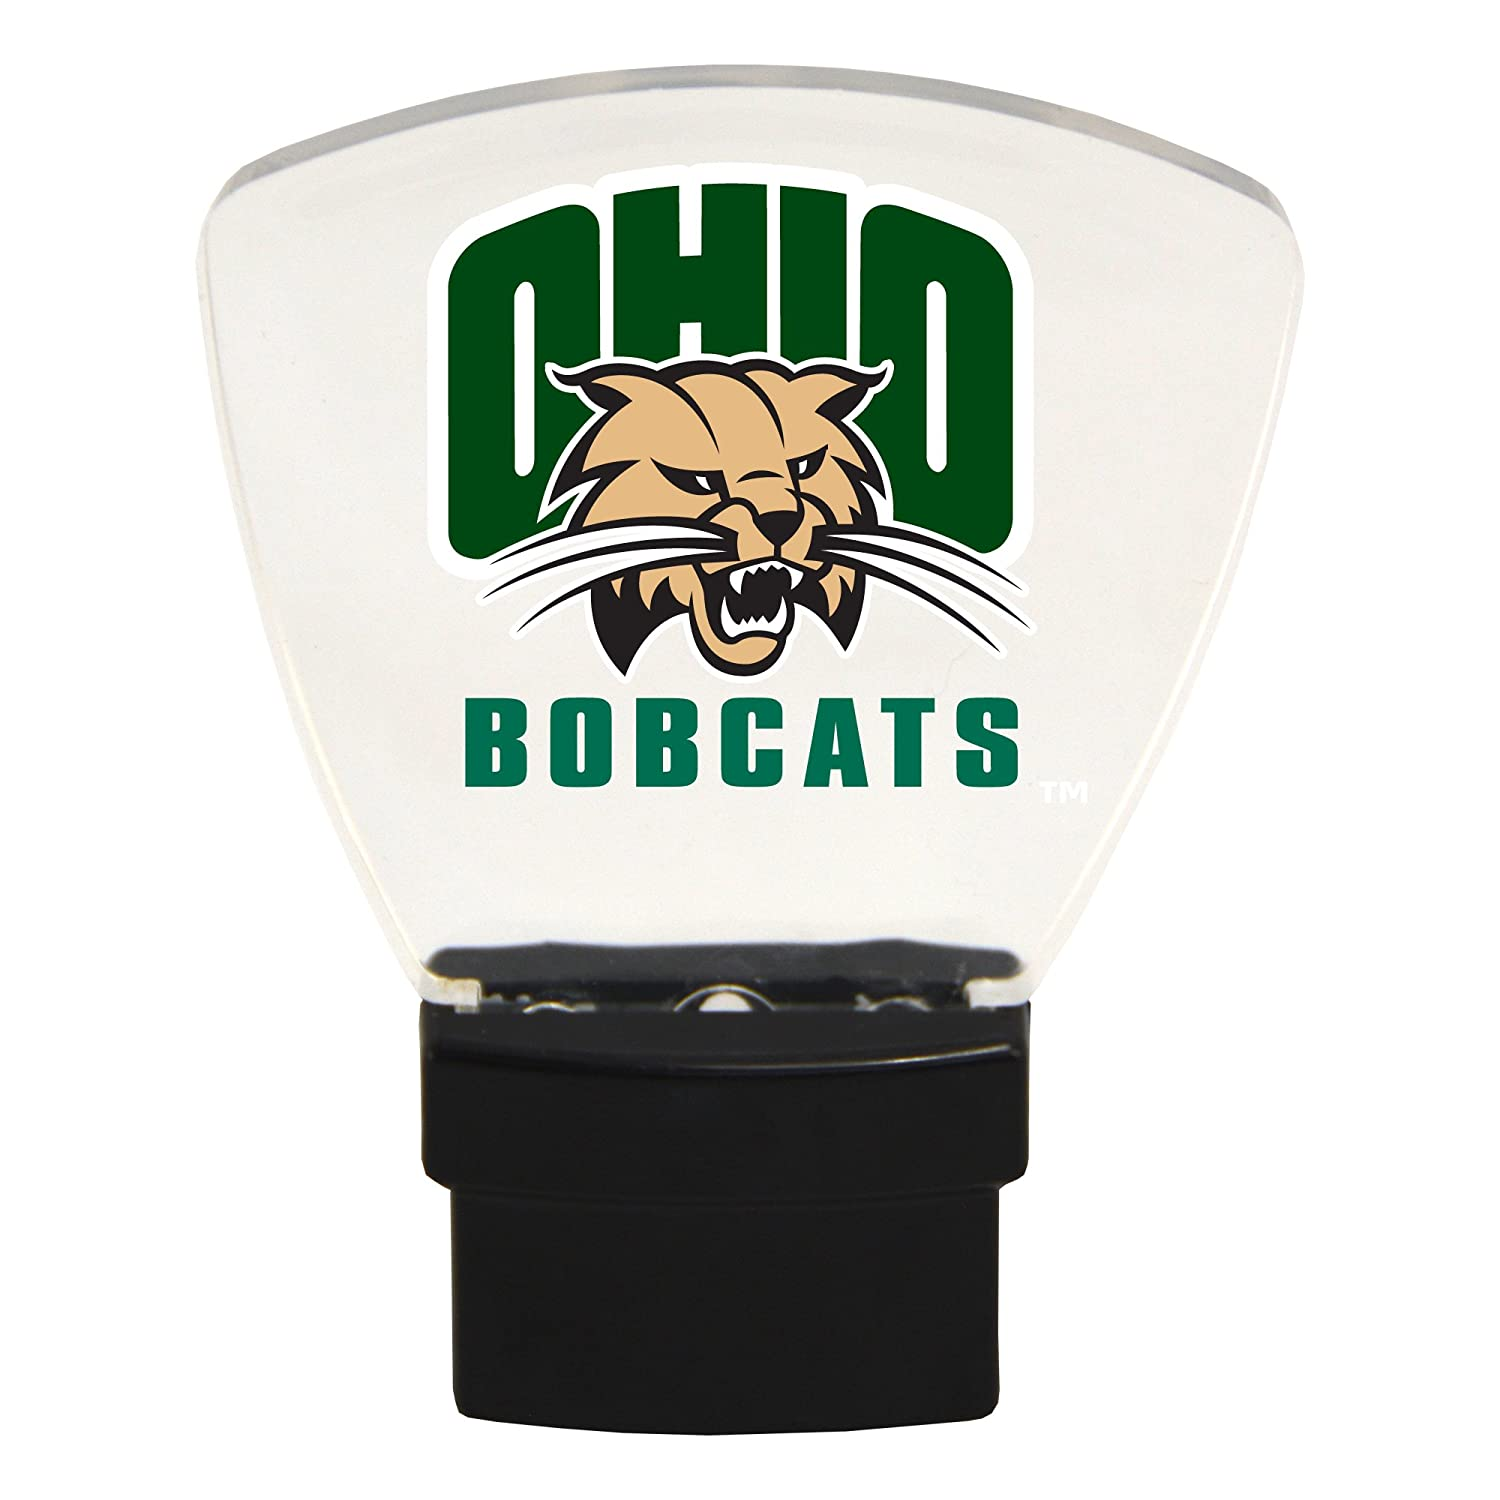 Authentic Street Signs NCAA Officially Licensed-LED Night Light-Super Energy Efficient-Prime Power Saving 0.5 watt Plug in-Great Sports Fan Gift for Adults-Babies-Kids Room